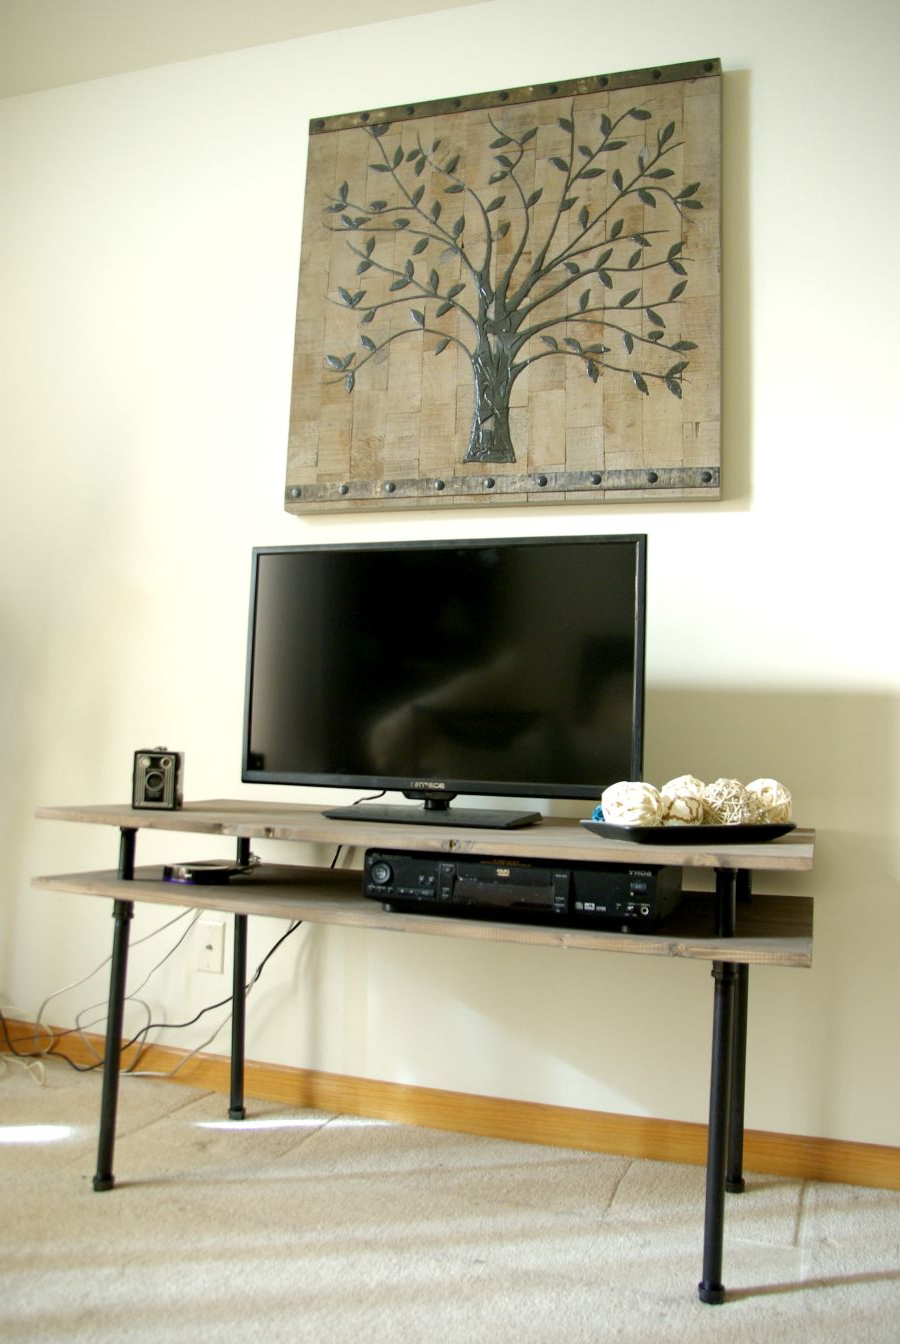 13 Diy Plans For Building A Tv Stand (Gallery 19 of 20)